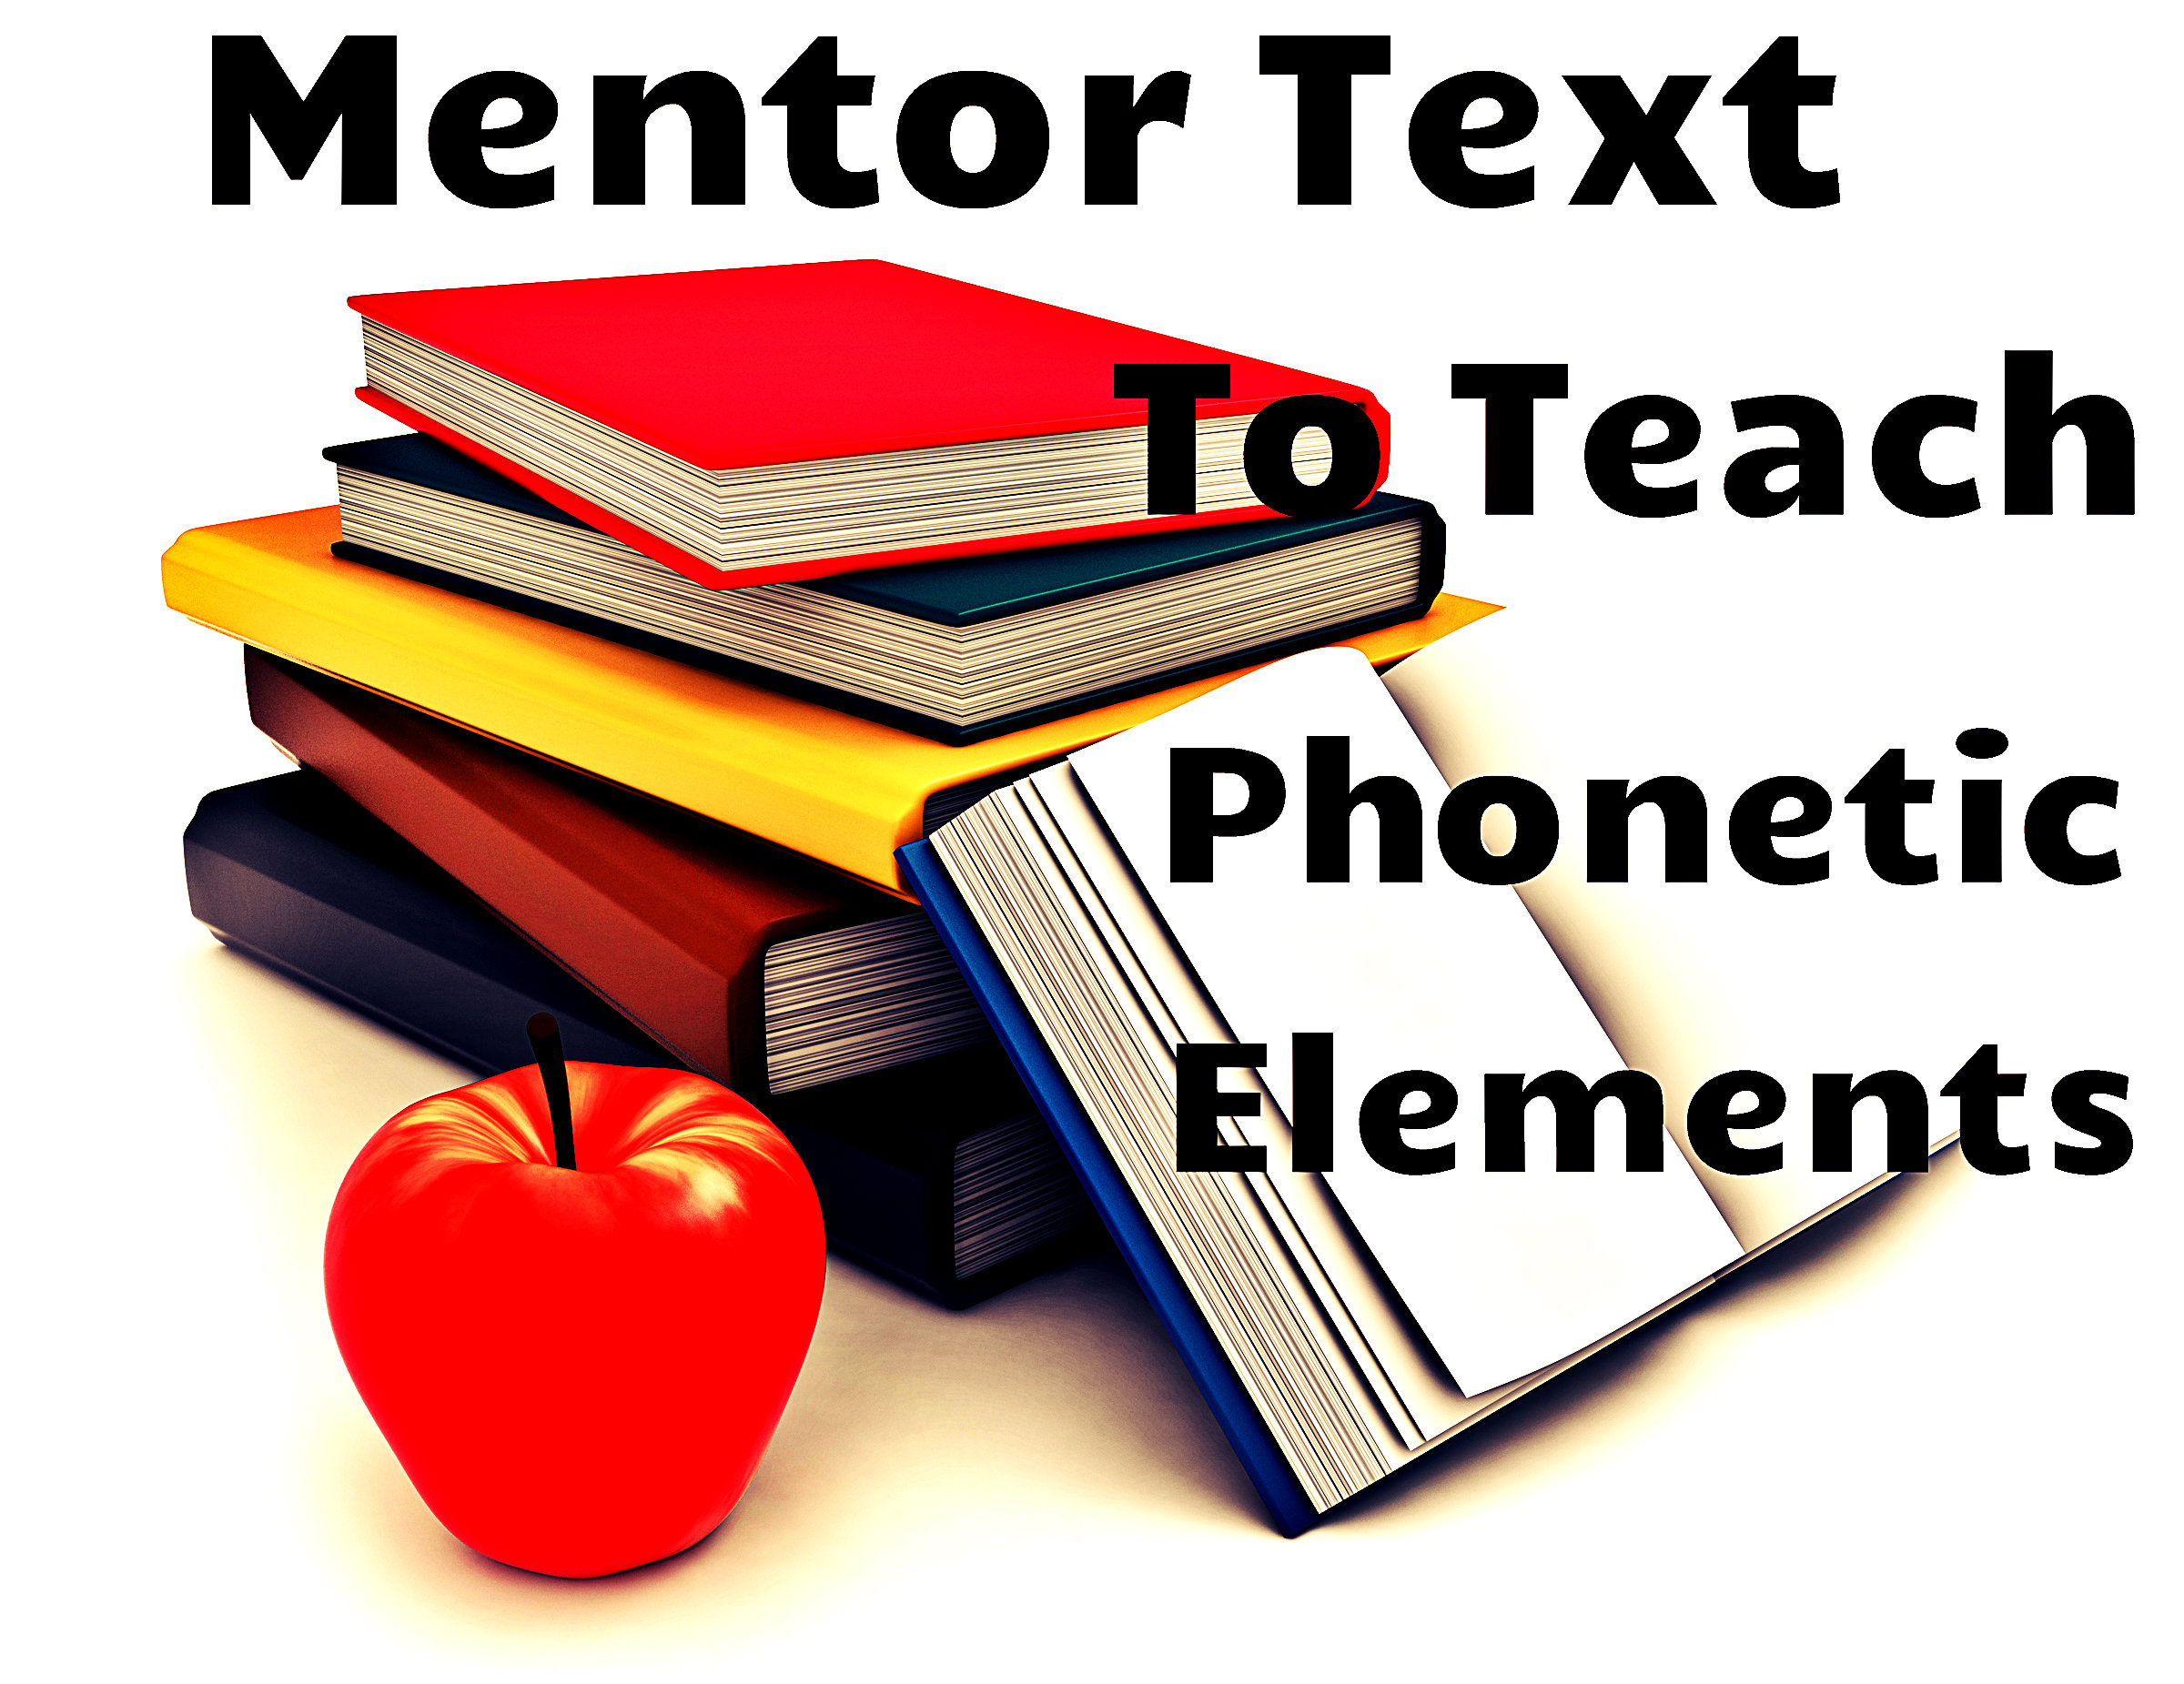 Mentor text to teach phonetic elements